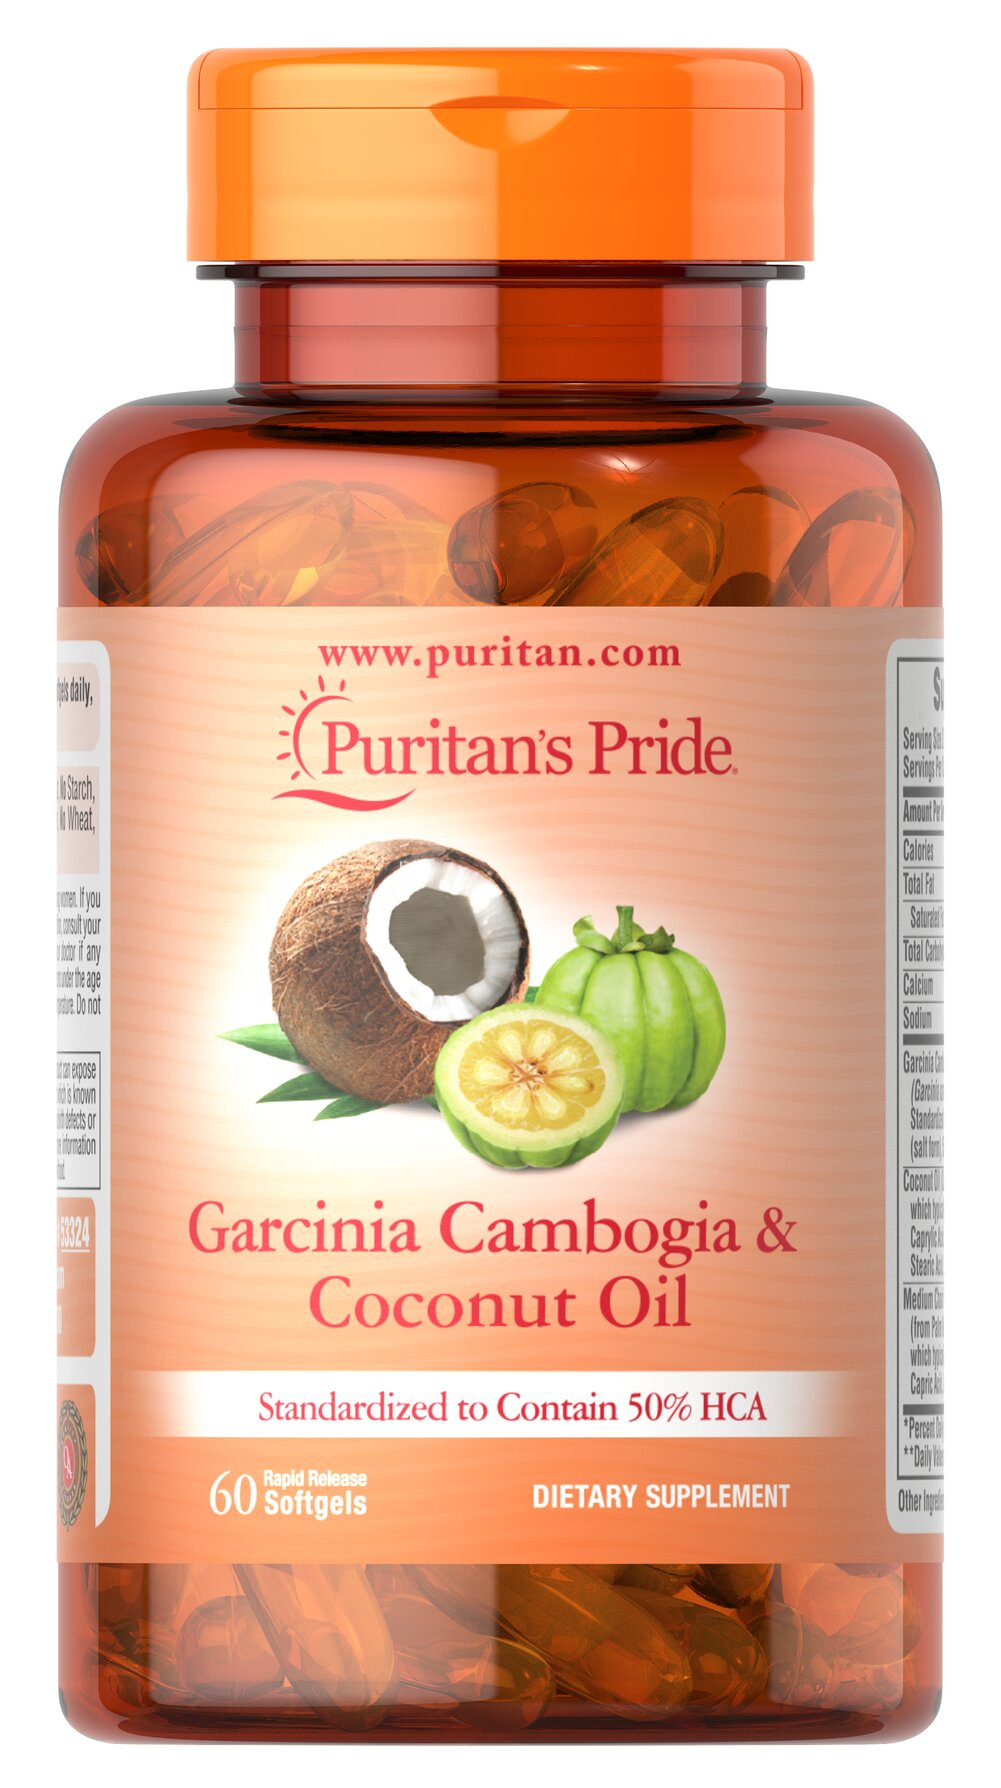 Garcinia Cambogia 500 mg plus Coconut Oil 500mg <p>•    Standardized to Contain 500mg HCA per serving<br />•    Rapid Release Capsules<br />•    1000 mg of Coconut Oil per serving<br /></p><p>Garcinia Cambogia is related to the superfruit Mangosteen and is sometimes called tamarind, brindleberry or camboge. Garcinia Cambogia has been used in Ayurvedic practices for hundreds of yea